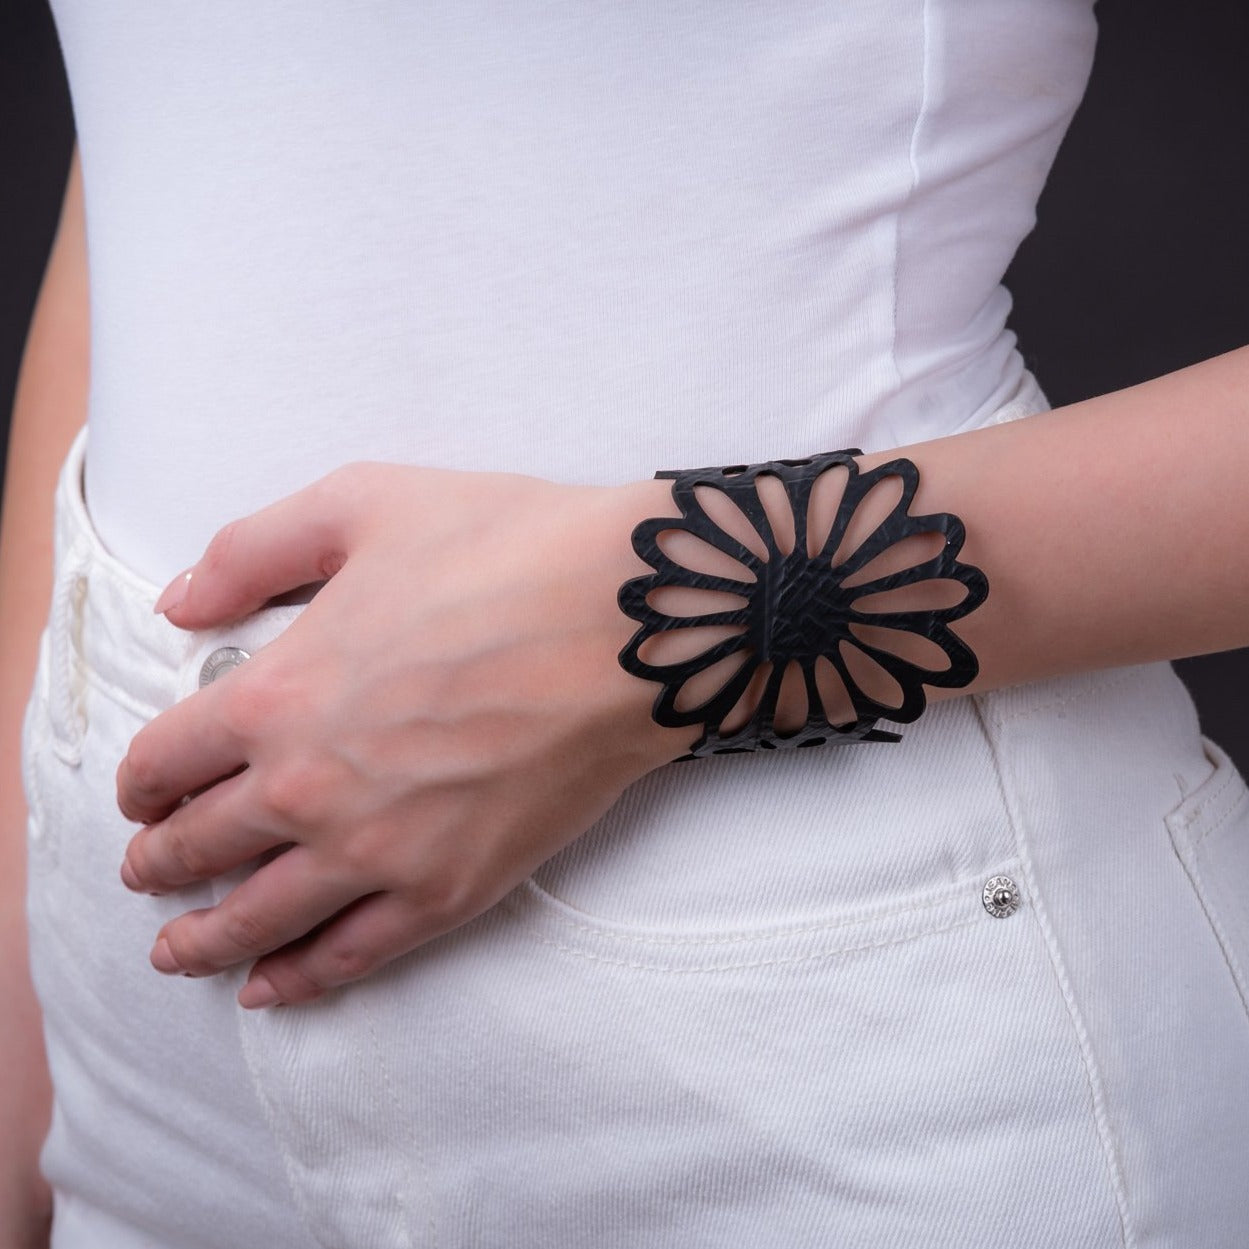 Dahlia Recycled Rubber Bracelet by Paguro Upcycle